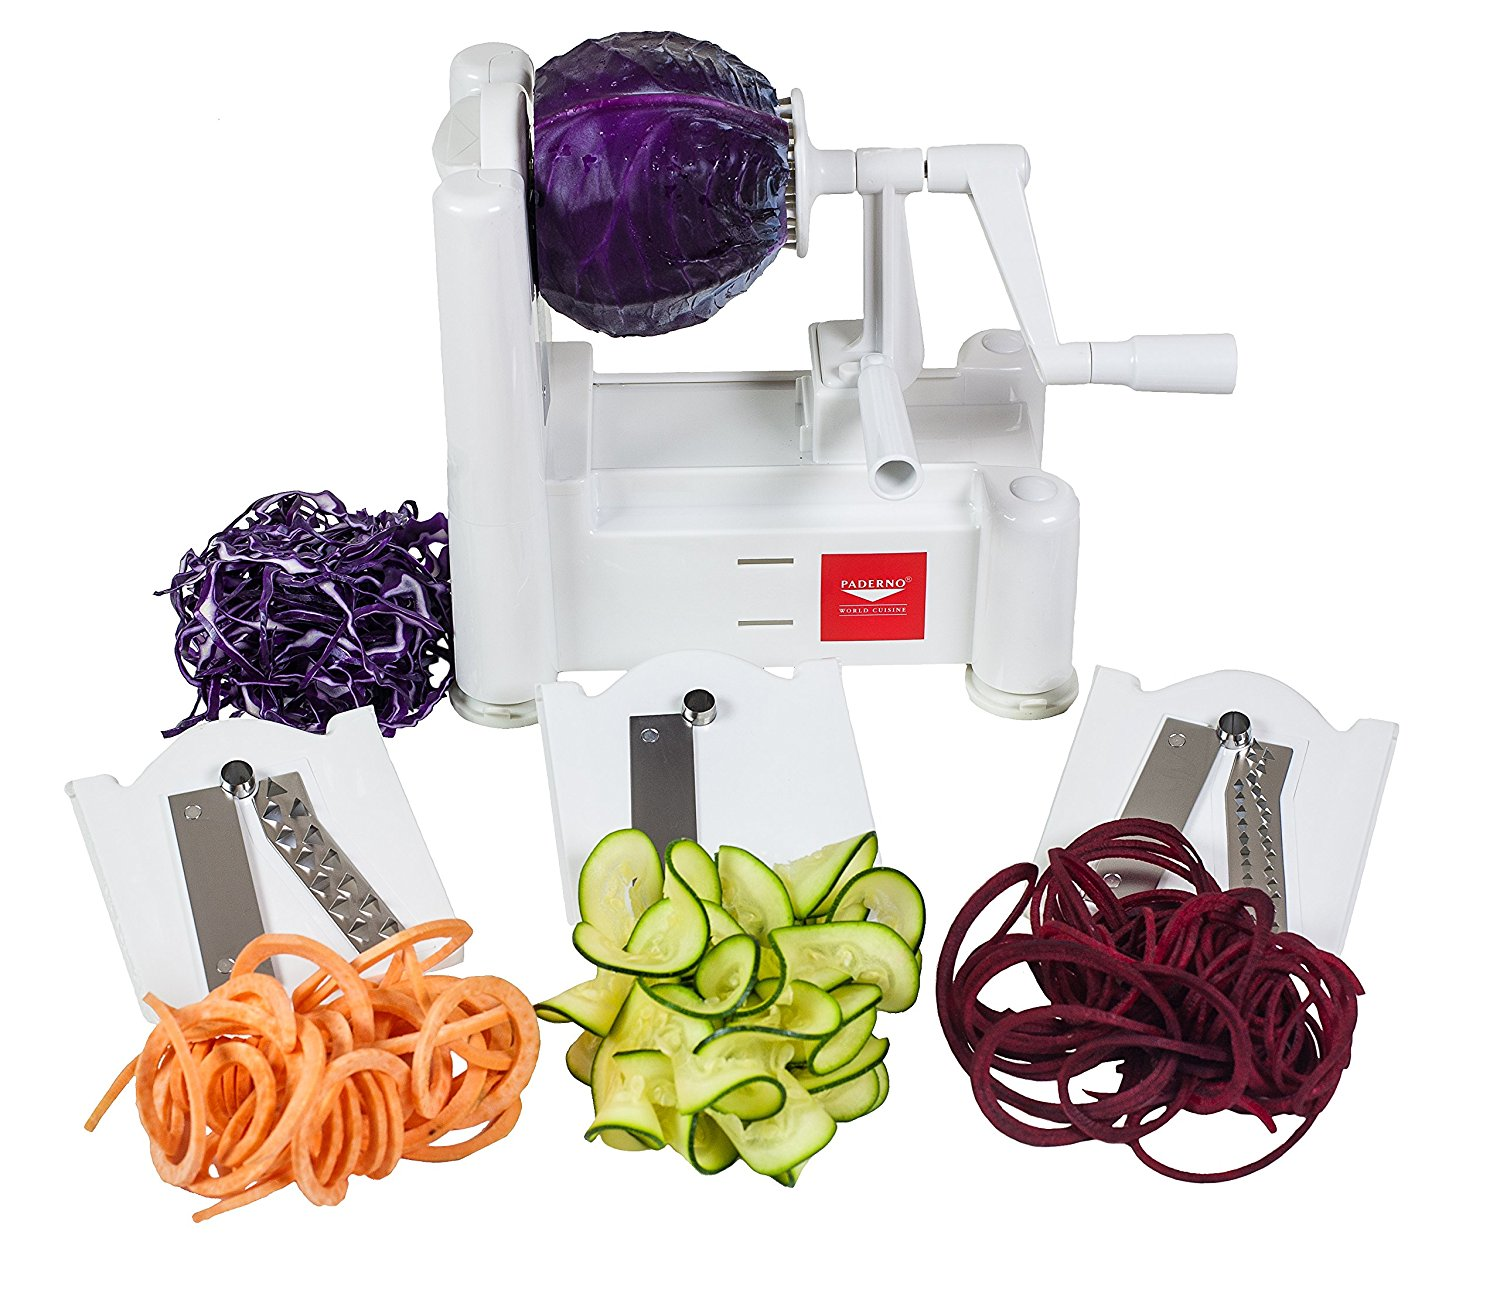 Paderno World Cuisine Spiral Vegetable Slicer / Countertop-Mounted Plastic Spiralizer Basic incl. 3 Different Blades Made of Stainless Steel